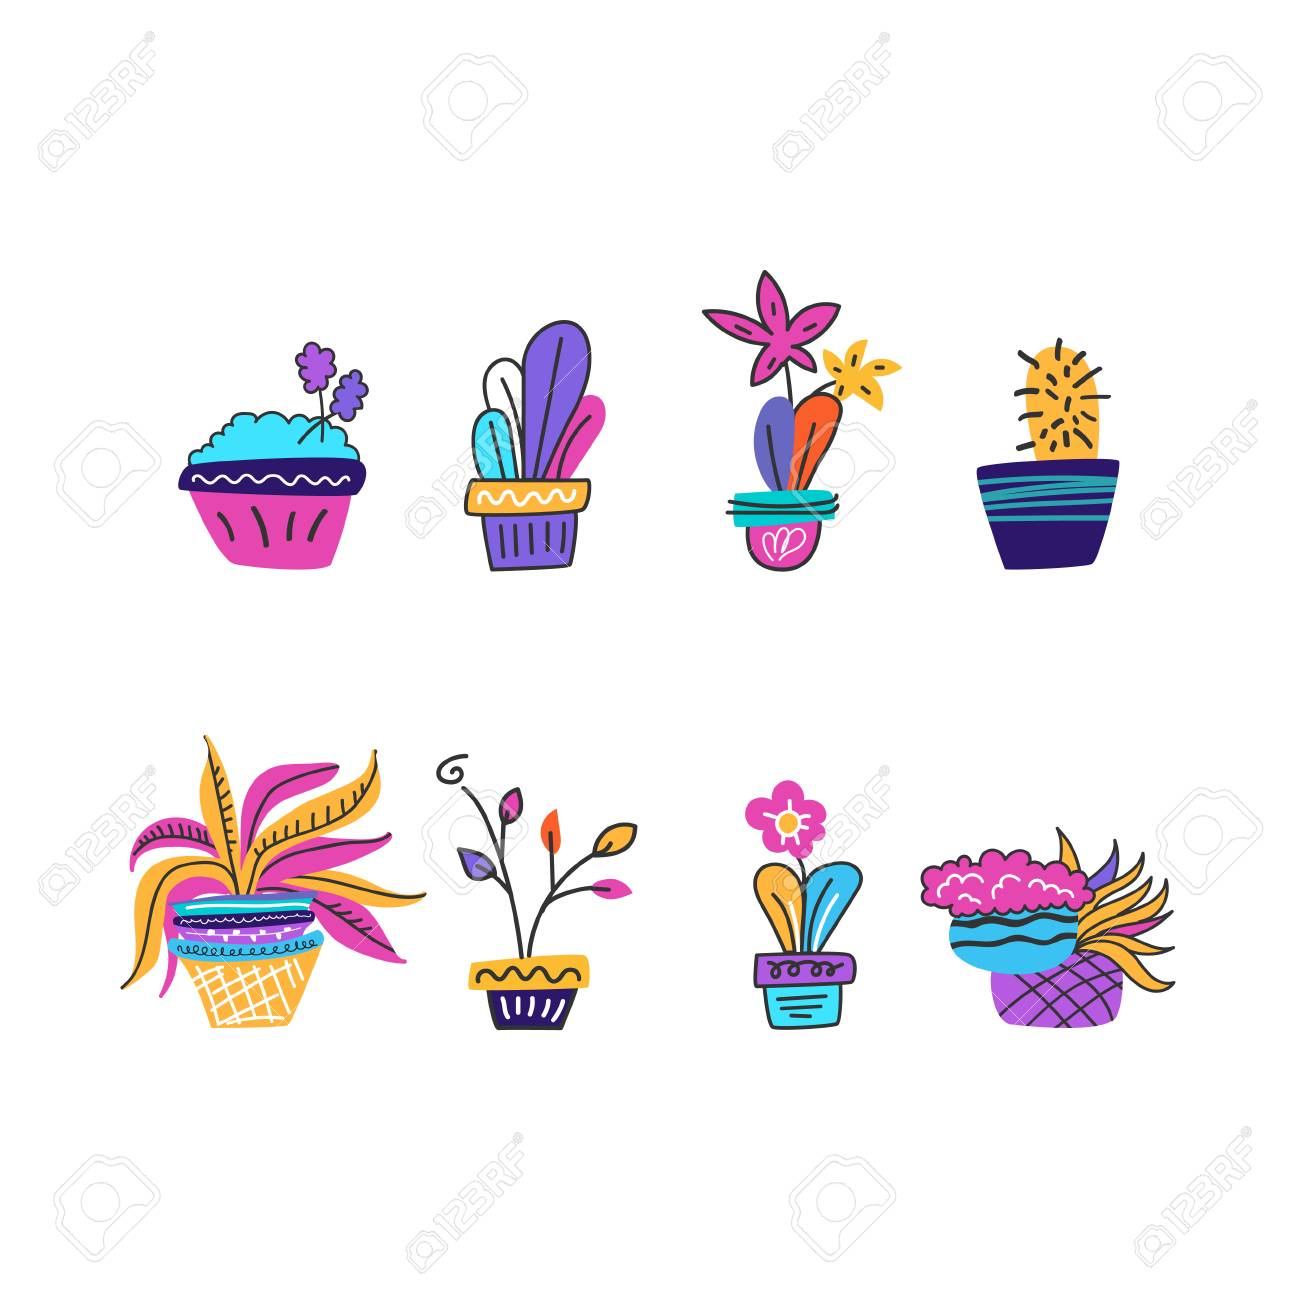 Set Of Indoor Plants Mixed Plant Arrangements For A Gift Drawn